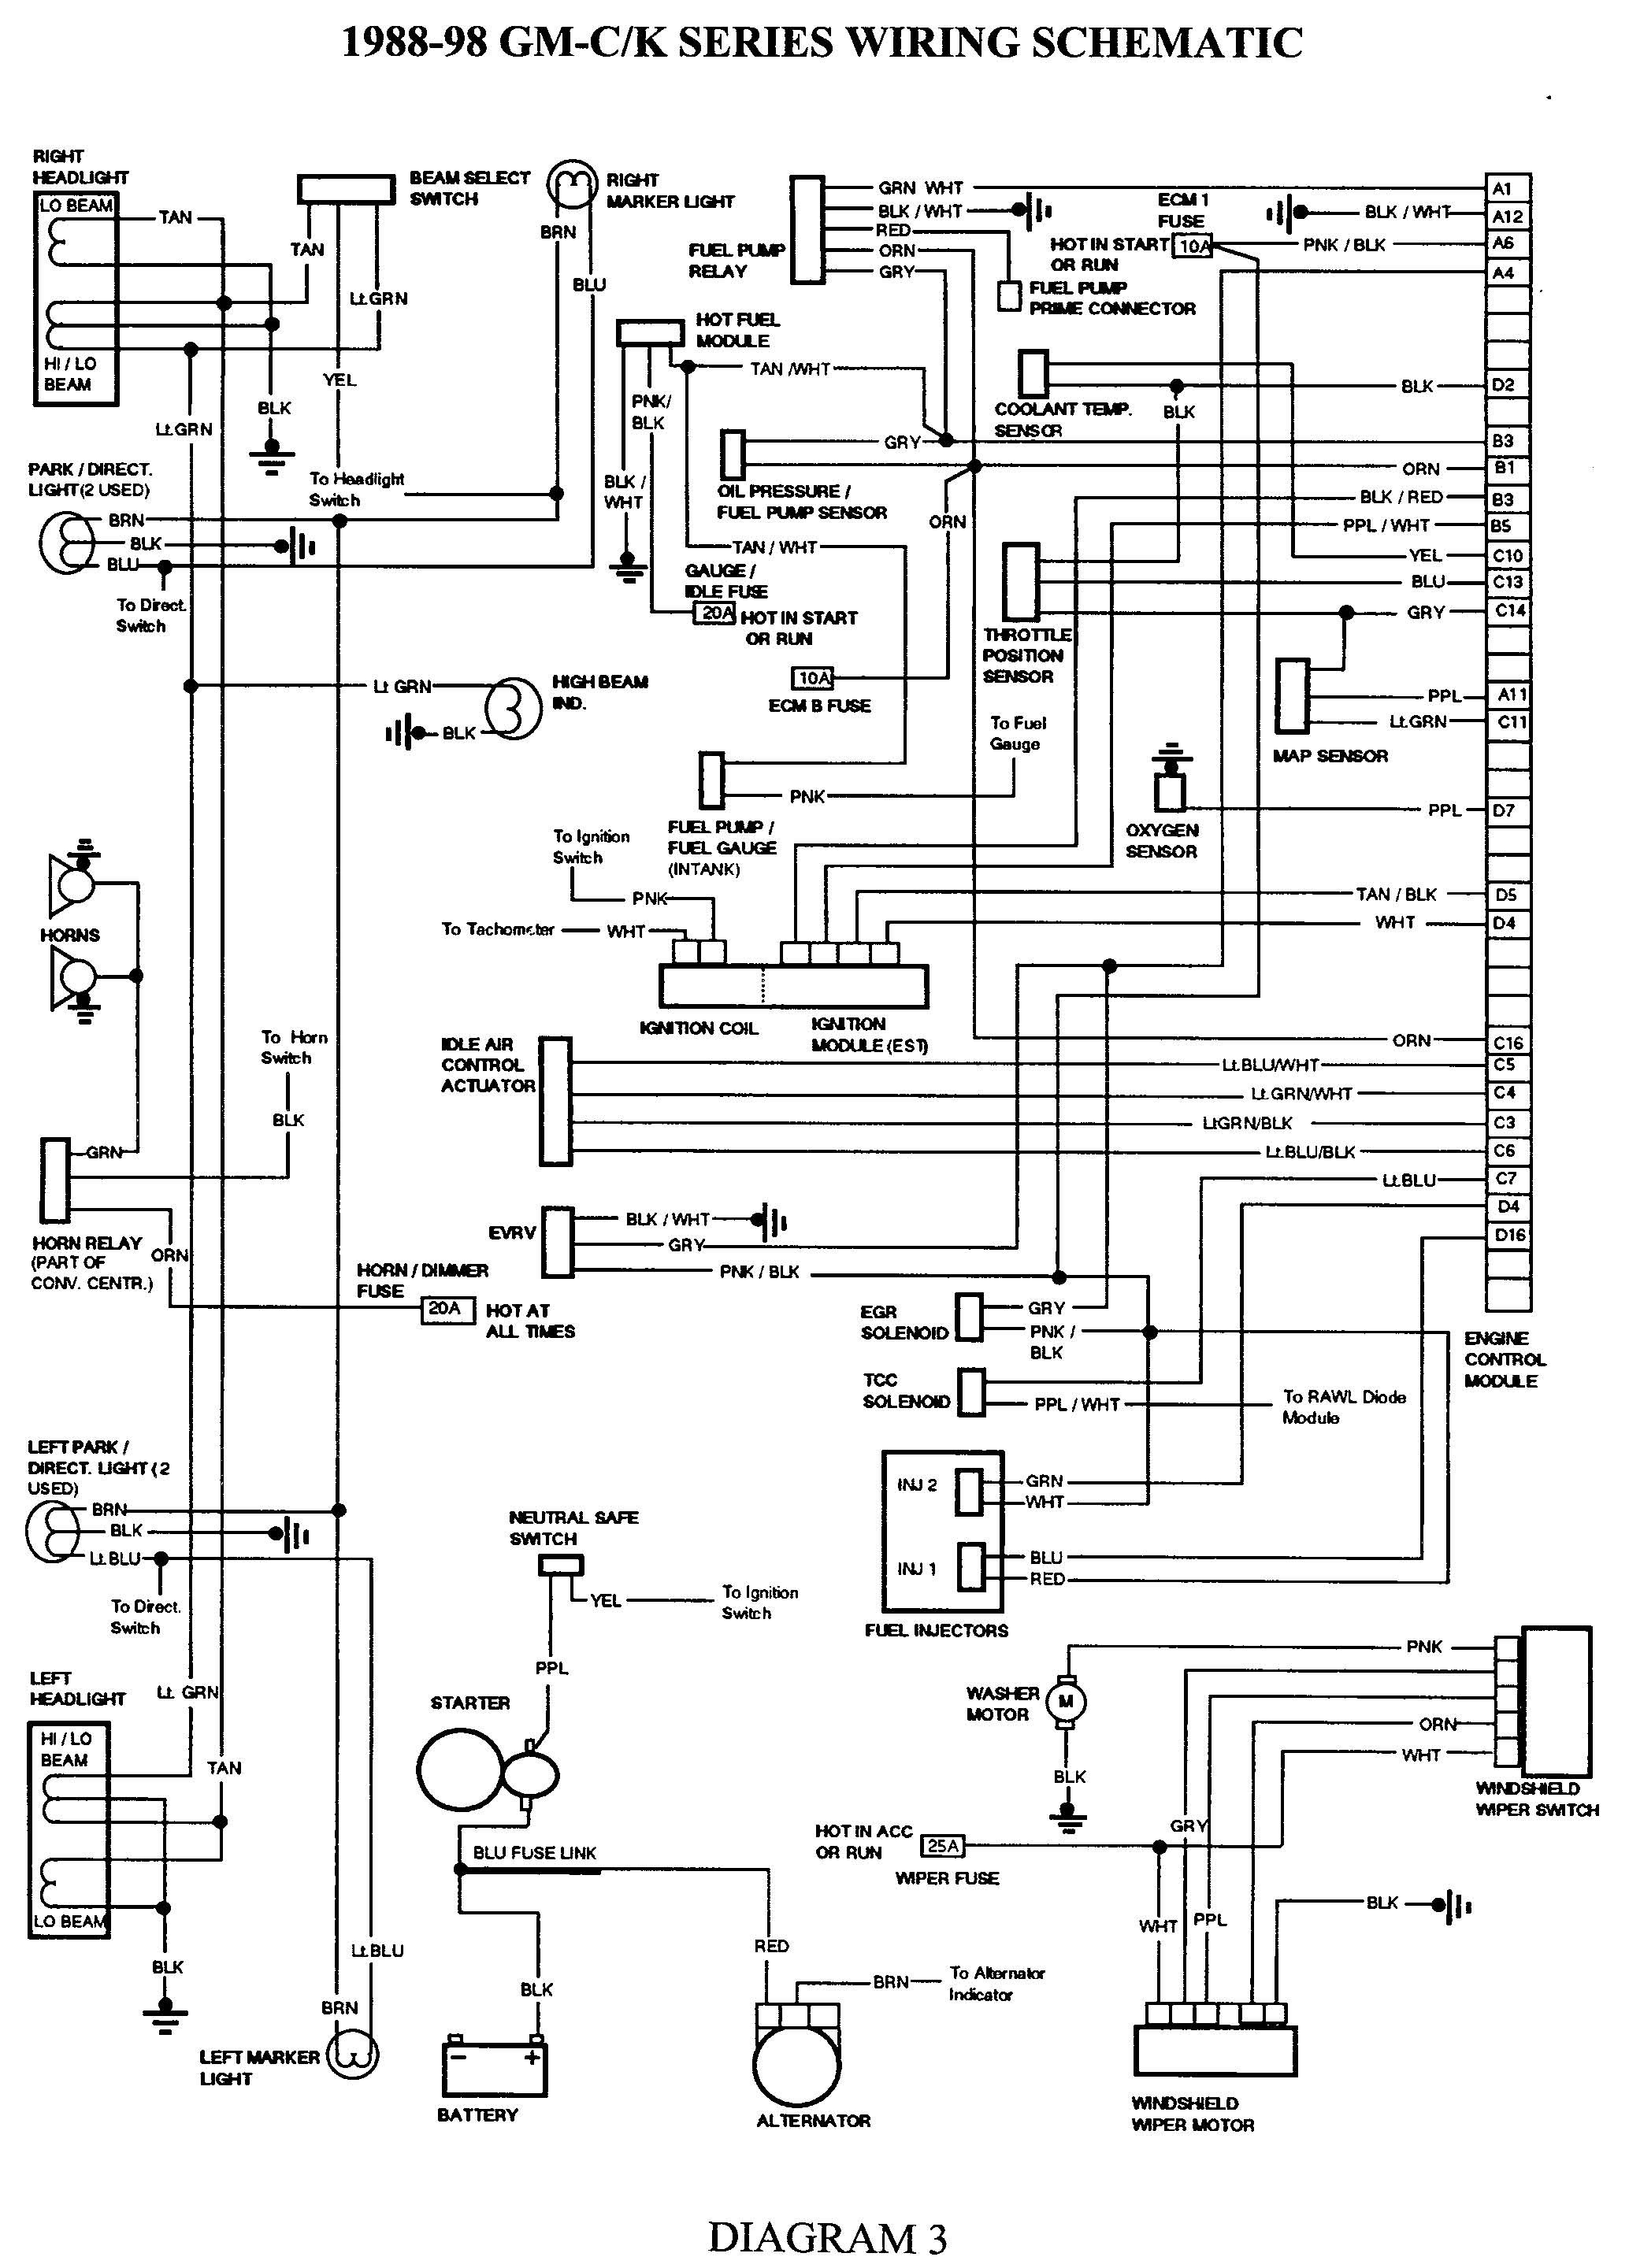 1999 Lincoln Town Car Engine Diagram How To Install Replace Spark 4 6l 98 Gmc Sierra Headlight Wiring Circuit Diagrams Image Of